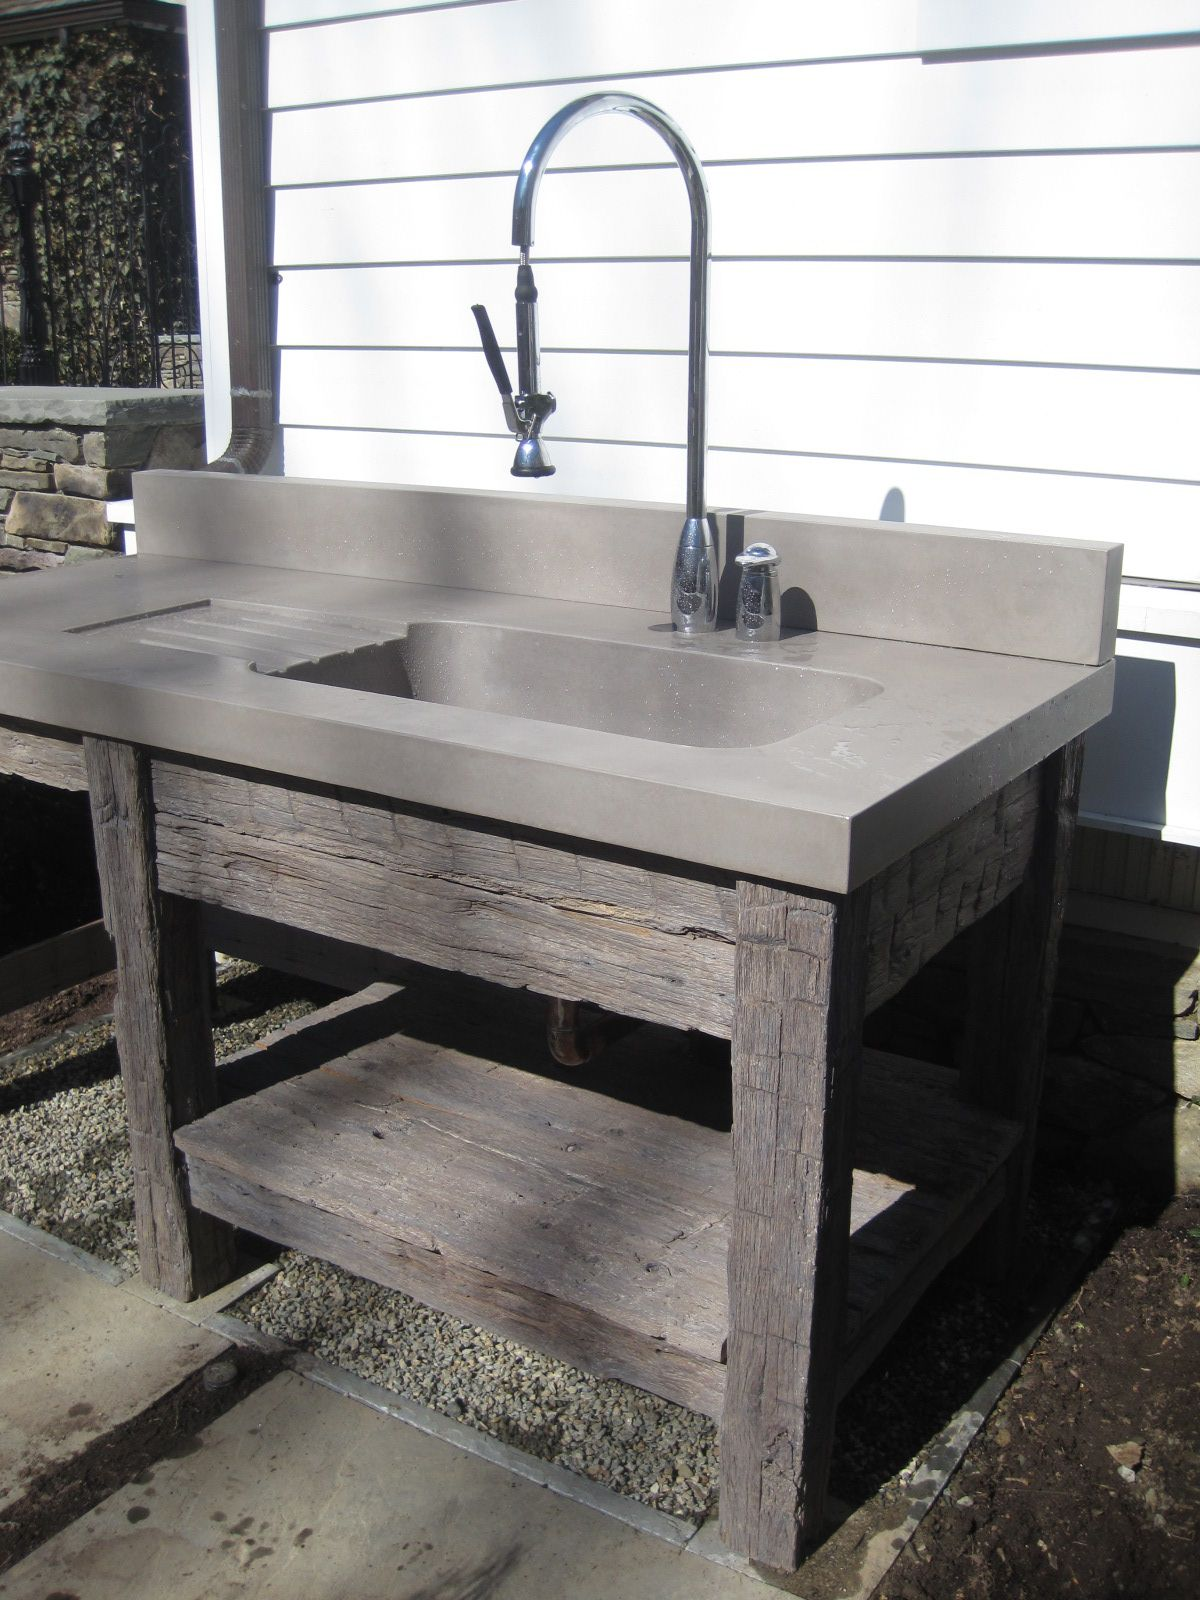 Concrete Kitchen Sink Grape Decor For Reclaimed Wood Vanity Base And Bathroom By